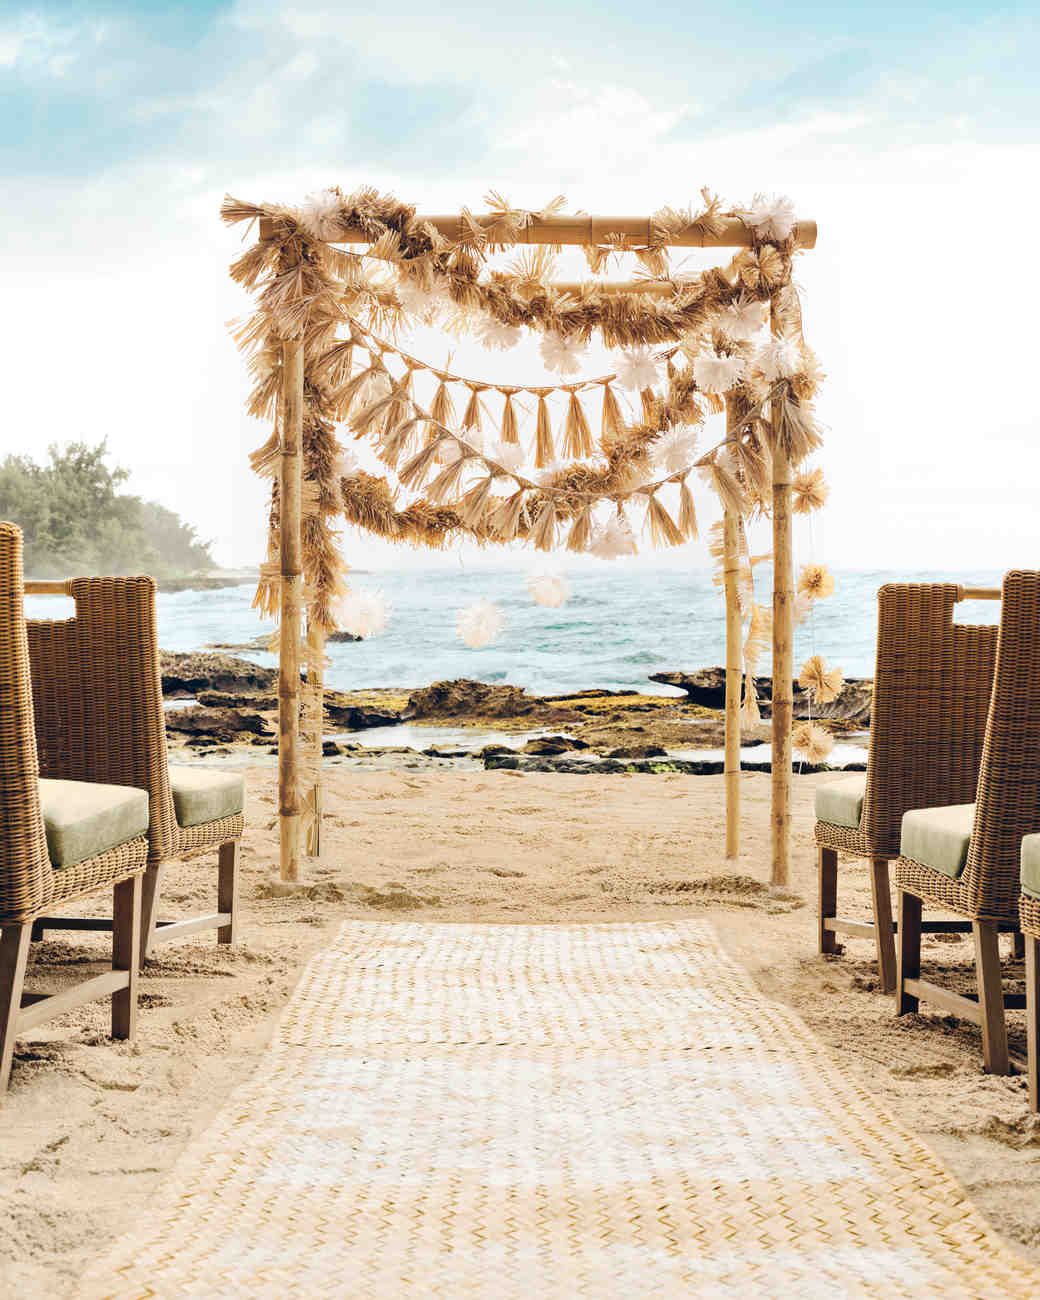 Beach Wedding Reception Ideas: 23 Beach Wedding Ideas You Can DIY To Make A Splash At